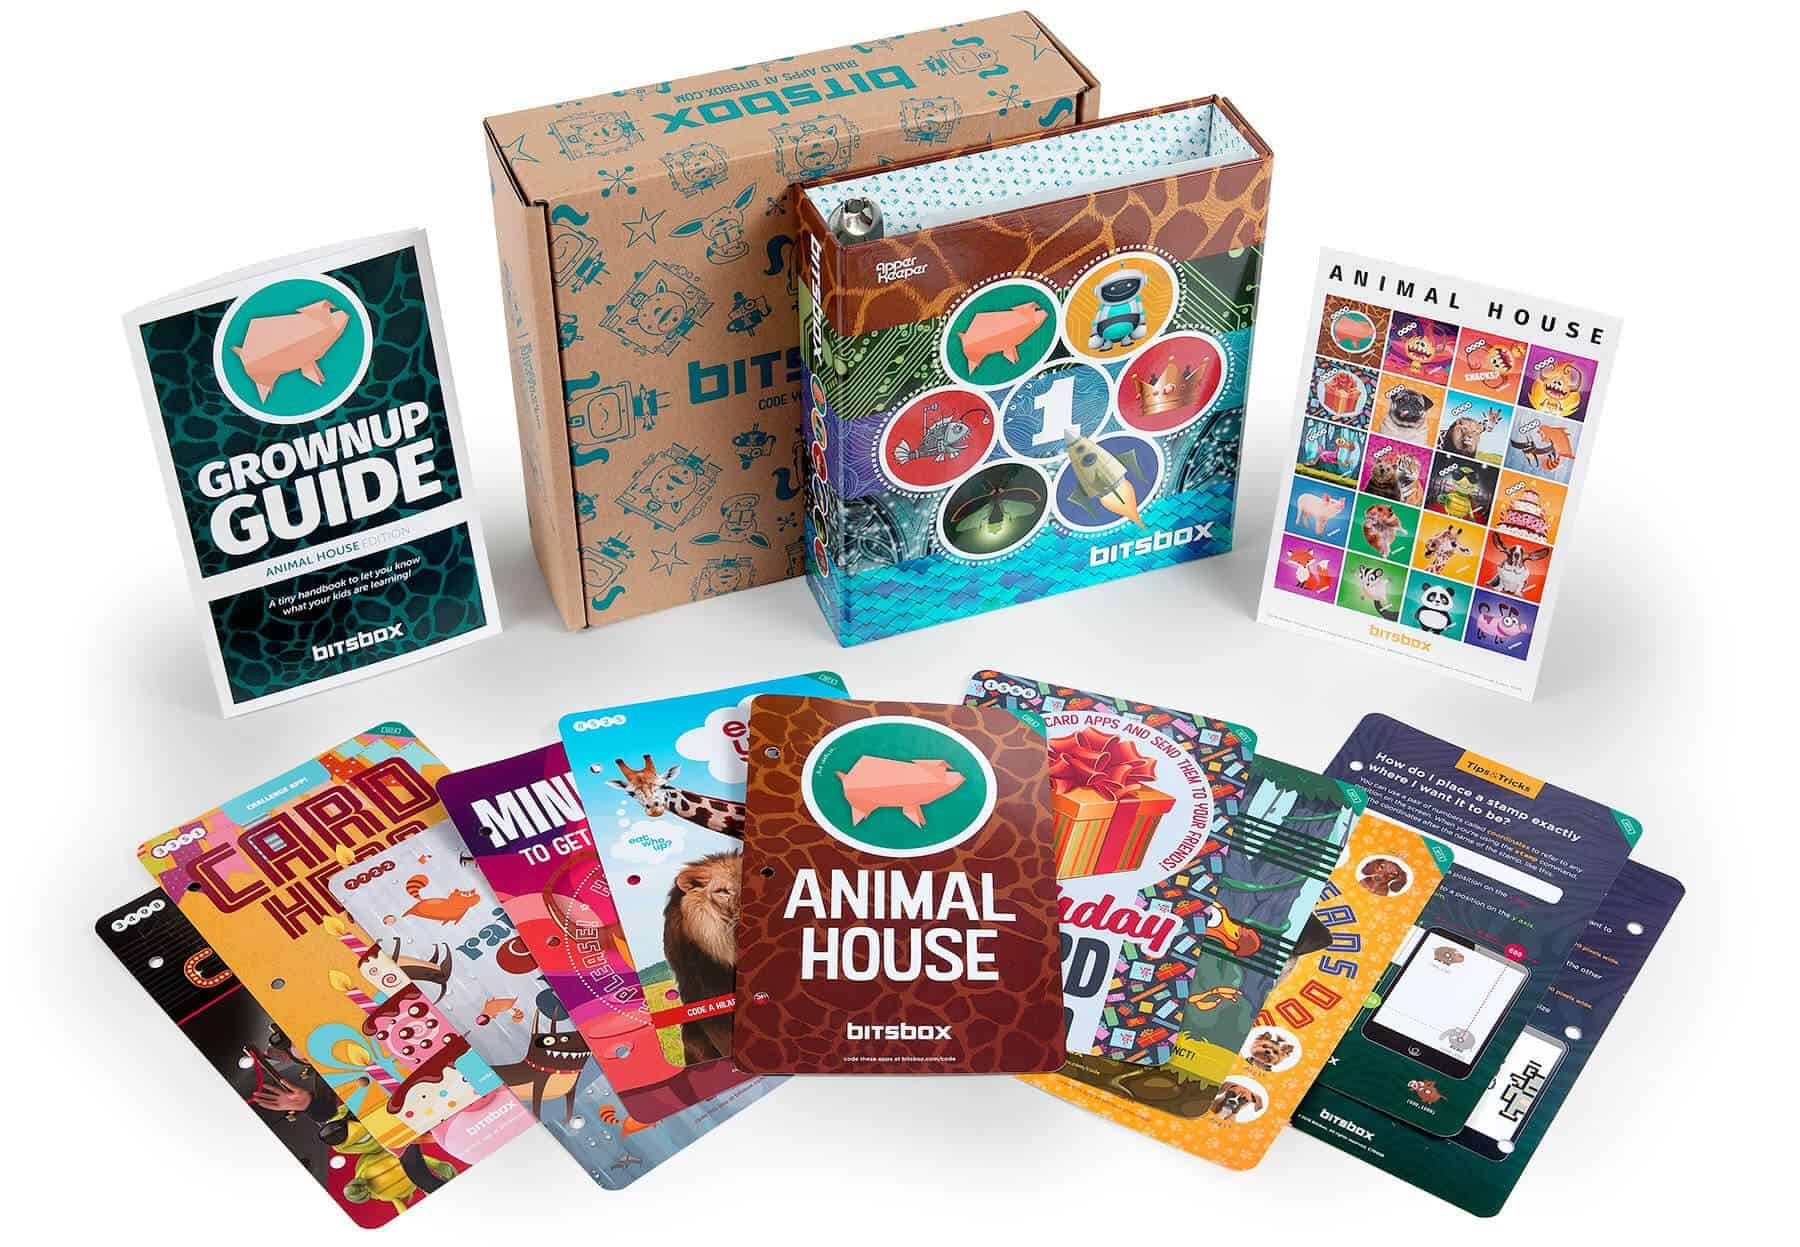 7 Stem Subscriptions Boxes That Will Teach Your Kids Coding Skills Teach Your Kids Code